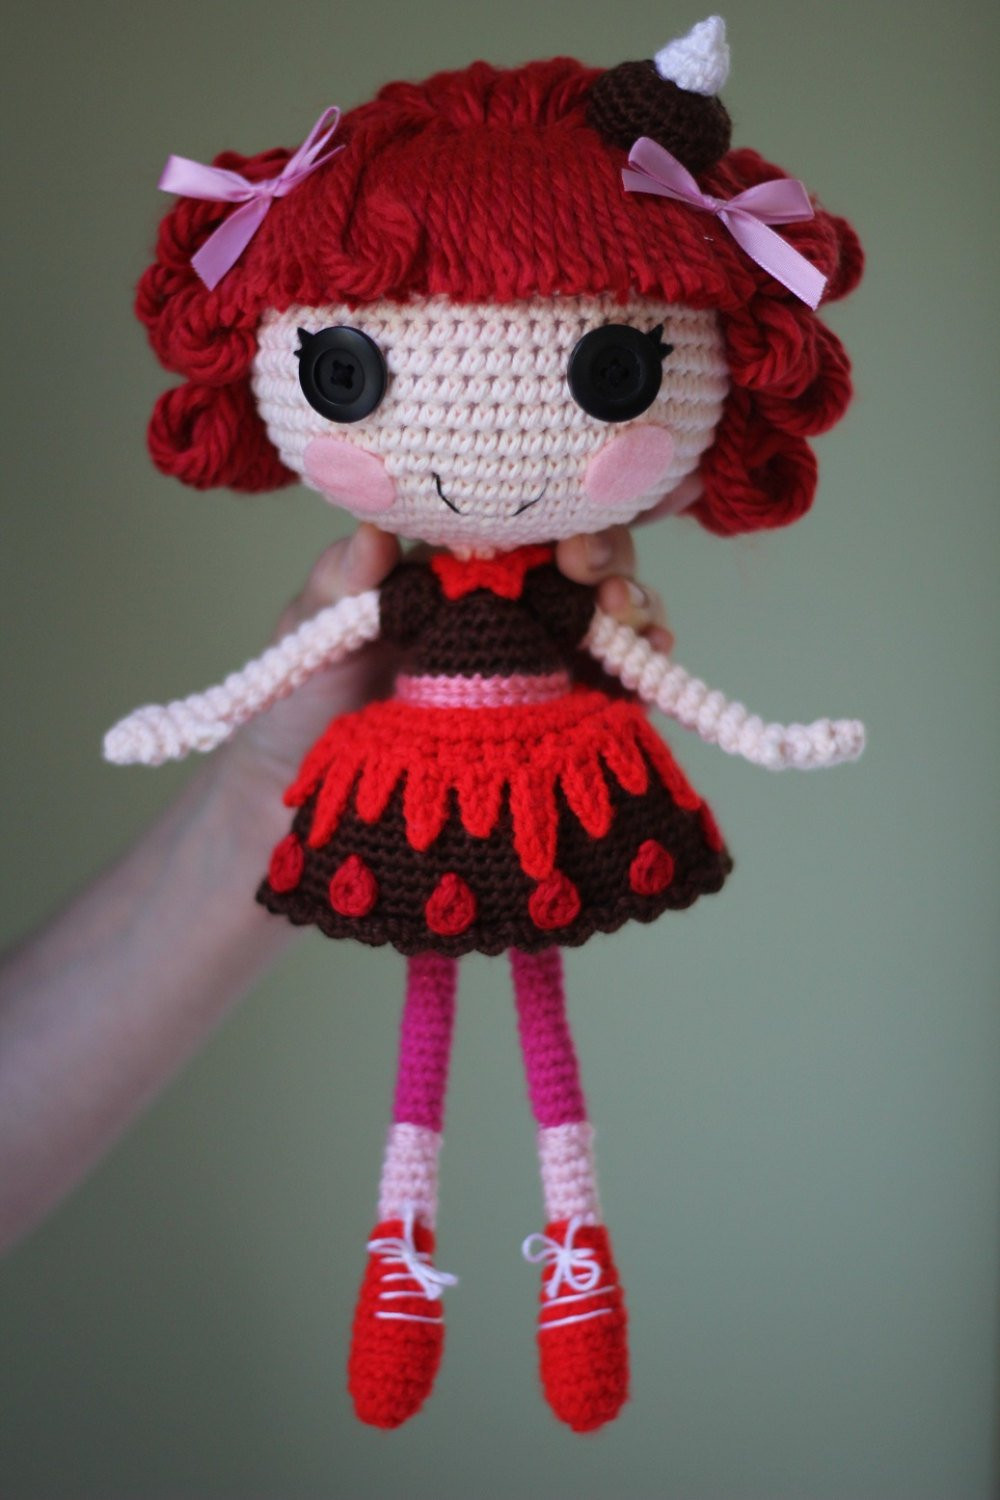 Crochet Doll Awesome Pattern Choco Crochet Amigurumi Doll Of Crochet Doll Inspirational Snow White Doll Crochet Pattern